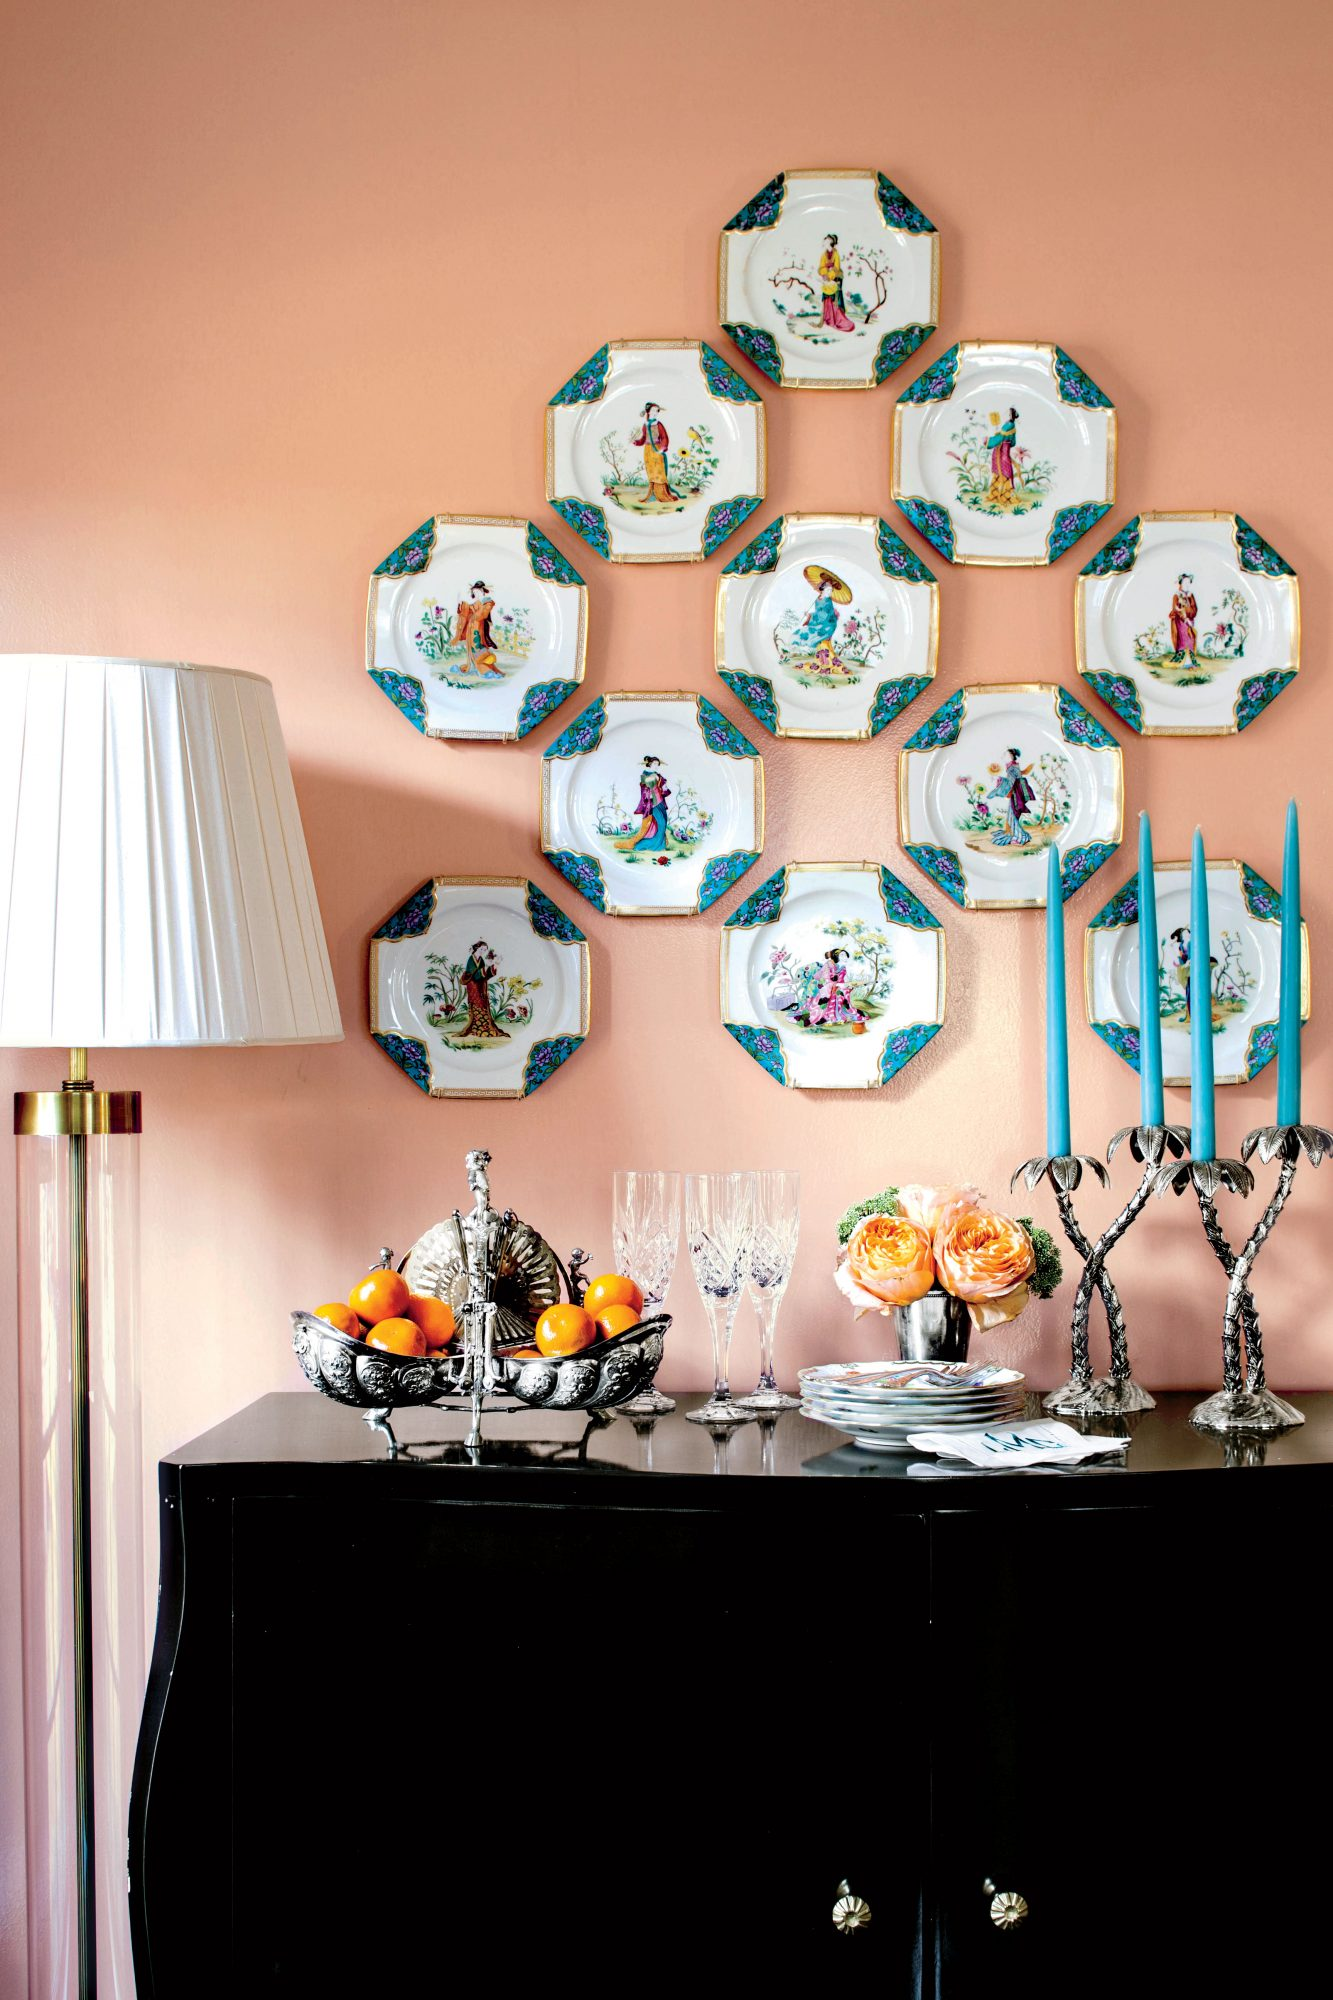 Decorative Wall Plates